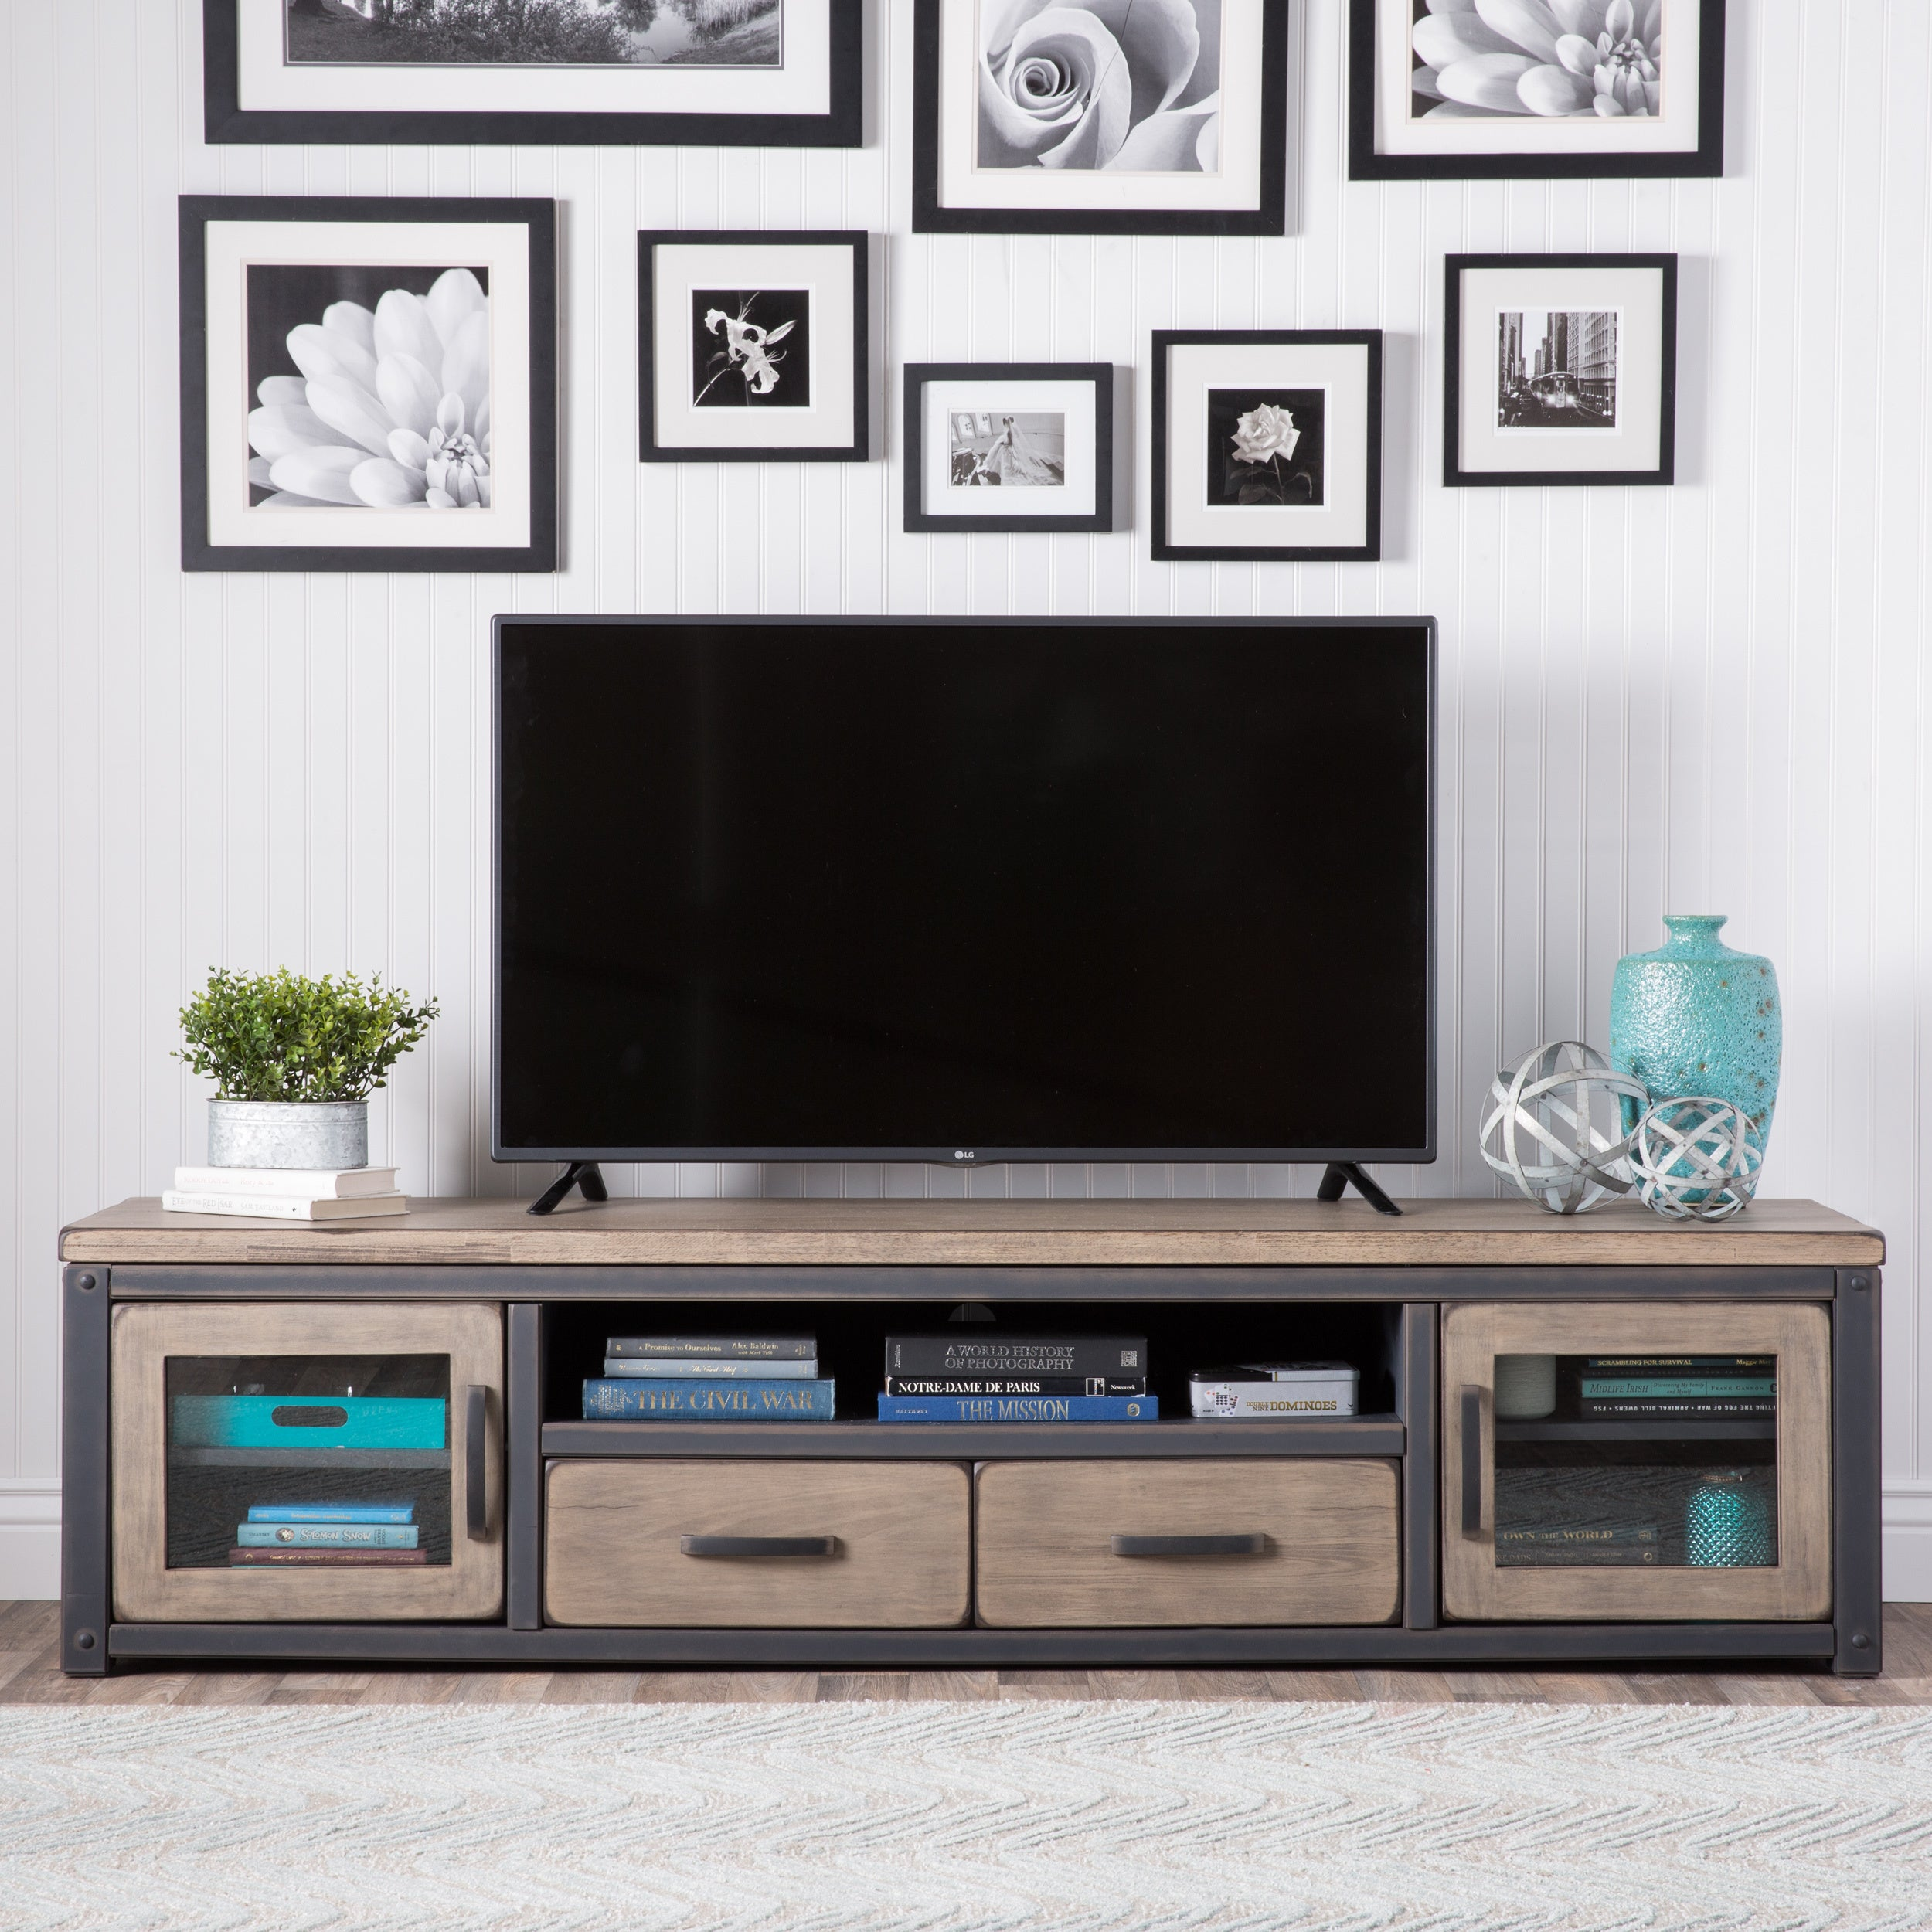 Carbon Loft Heritage Rustic Entertainment Center Free Shipping Today 7951237